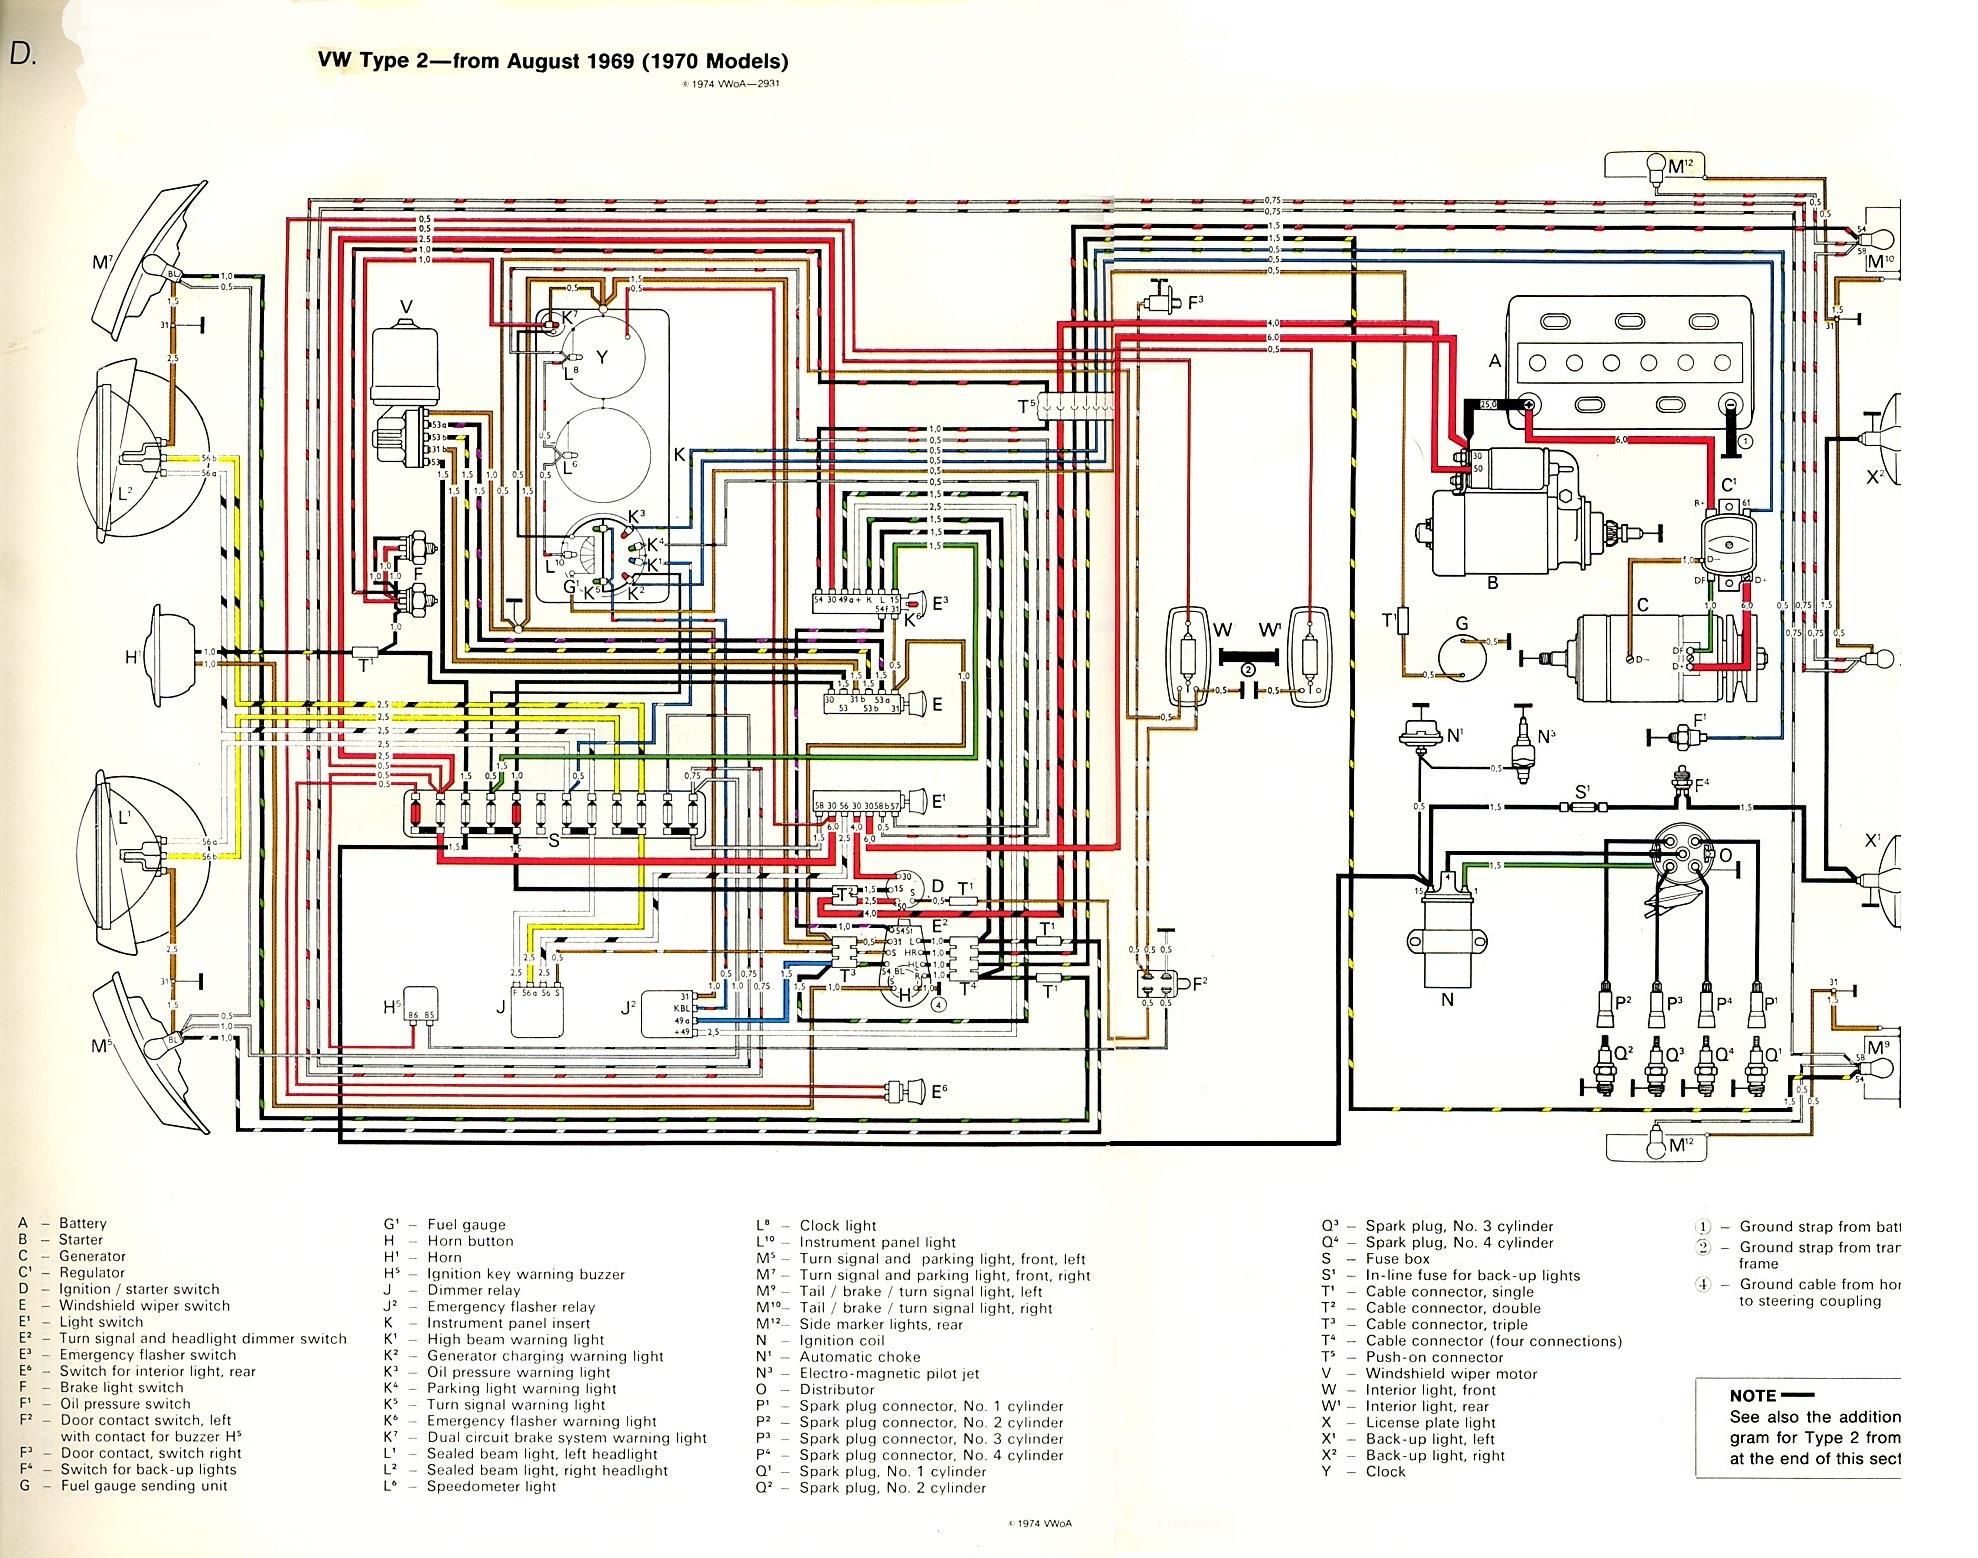 Wiring Diagram For 1964 Vw Bus